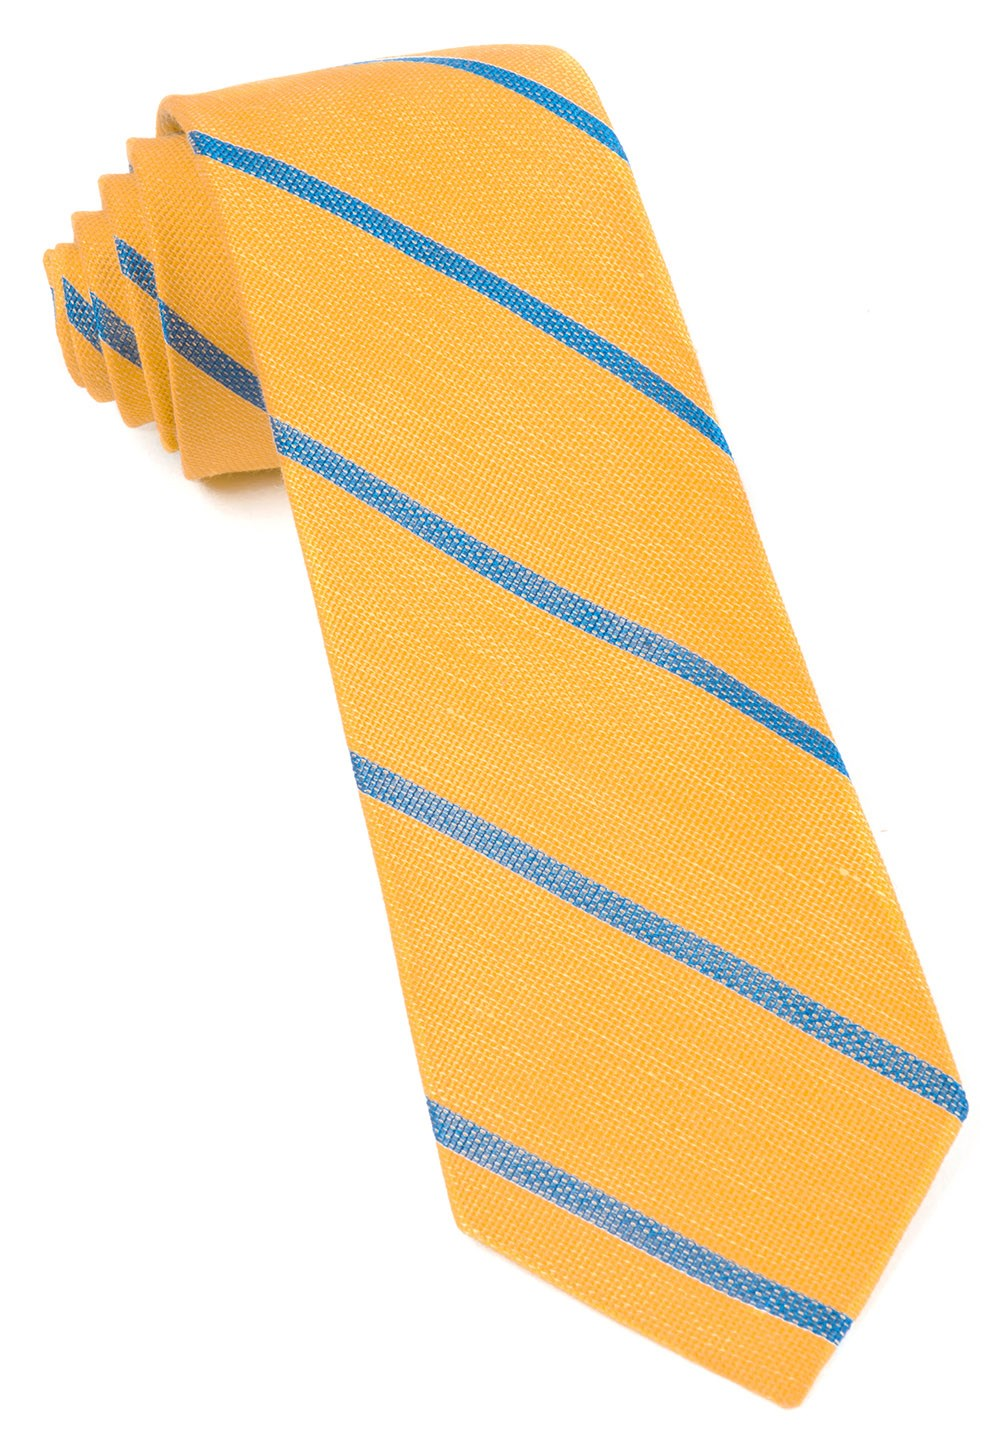 "Spring Break Stripe - Yellow Gold - 2.5"" x 58"" - Ties"